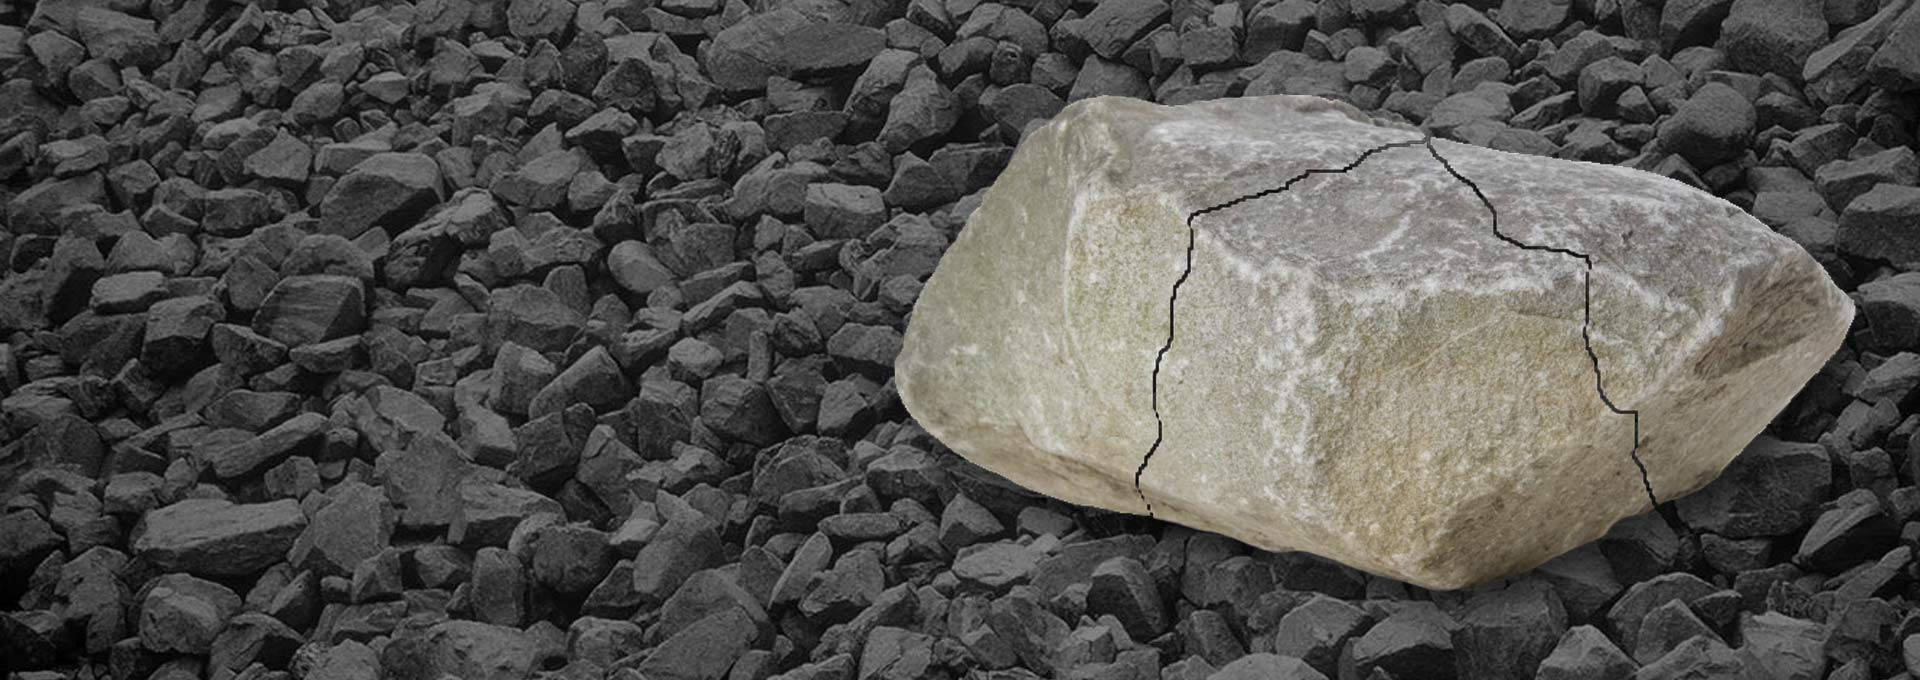 Rock breaking technologies